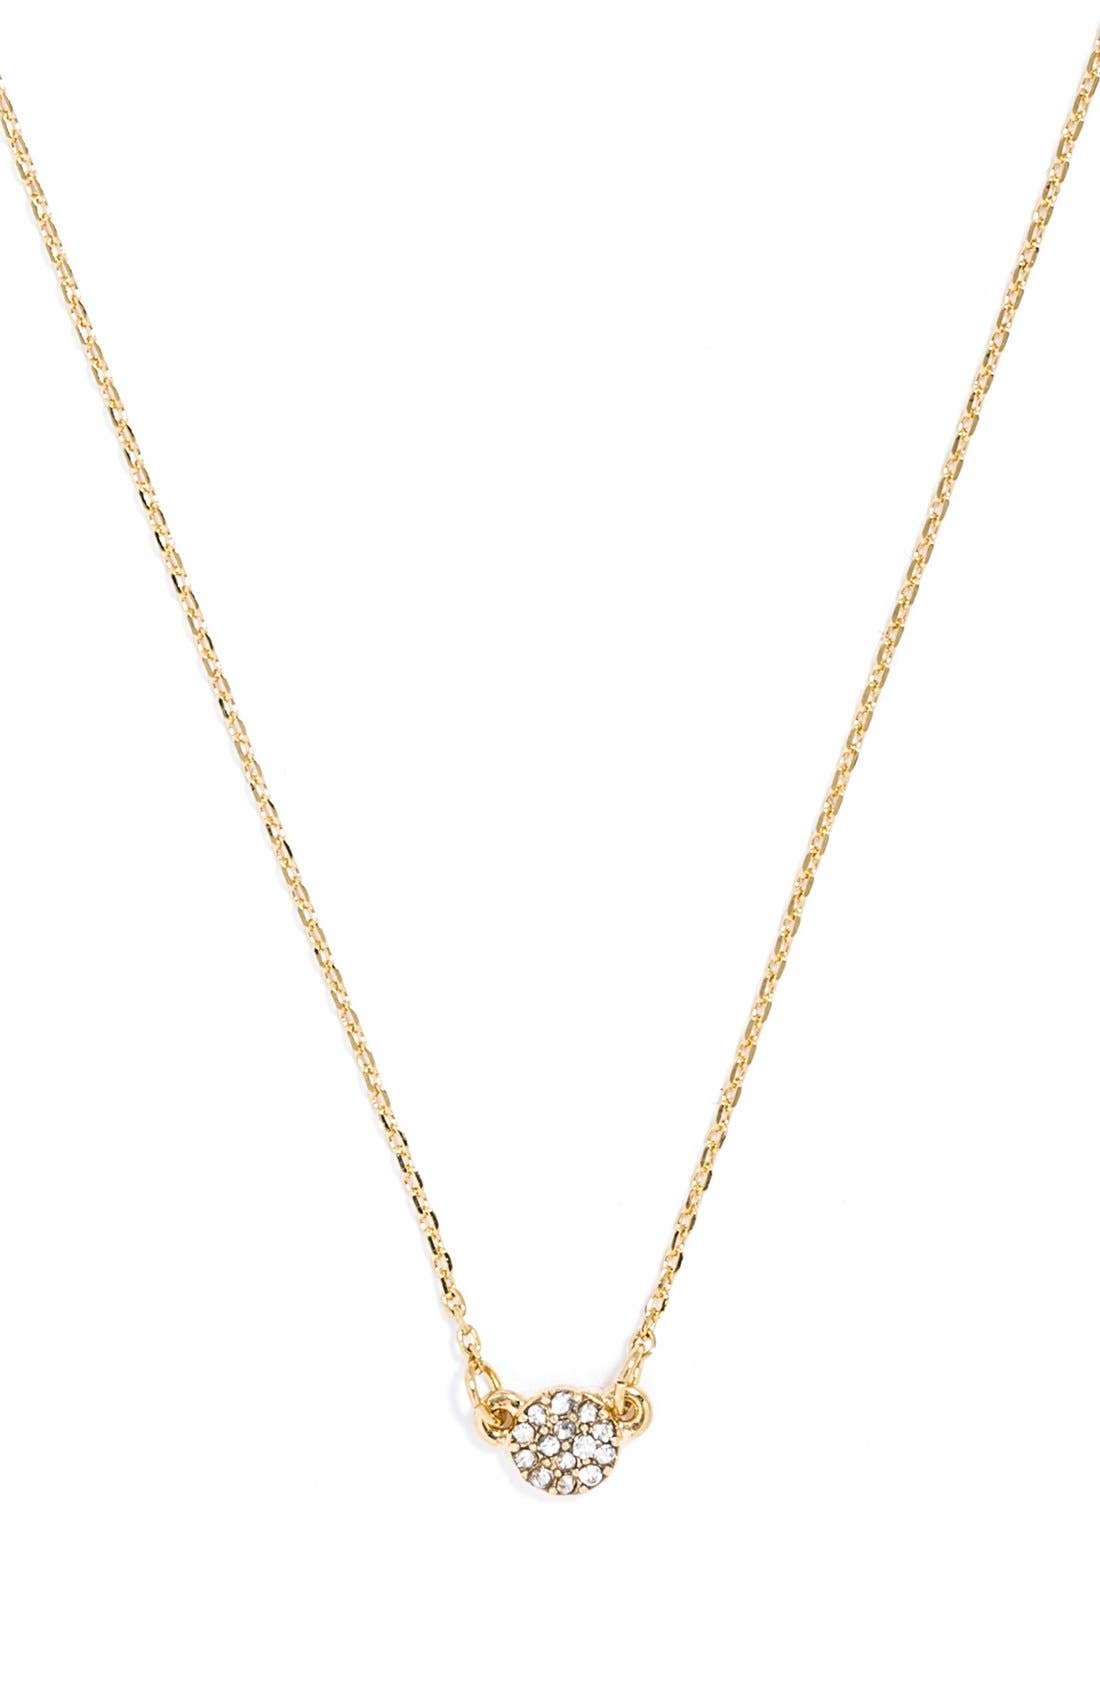 'Pyramid' Layered Necklace Gift Set,                             Alternate thumbnail 7, color,                             Gold